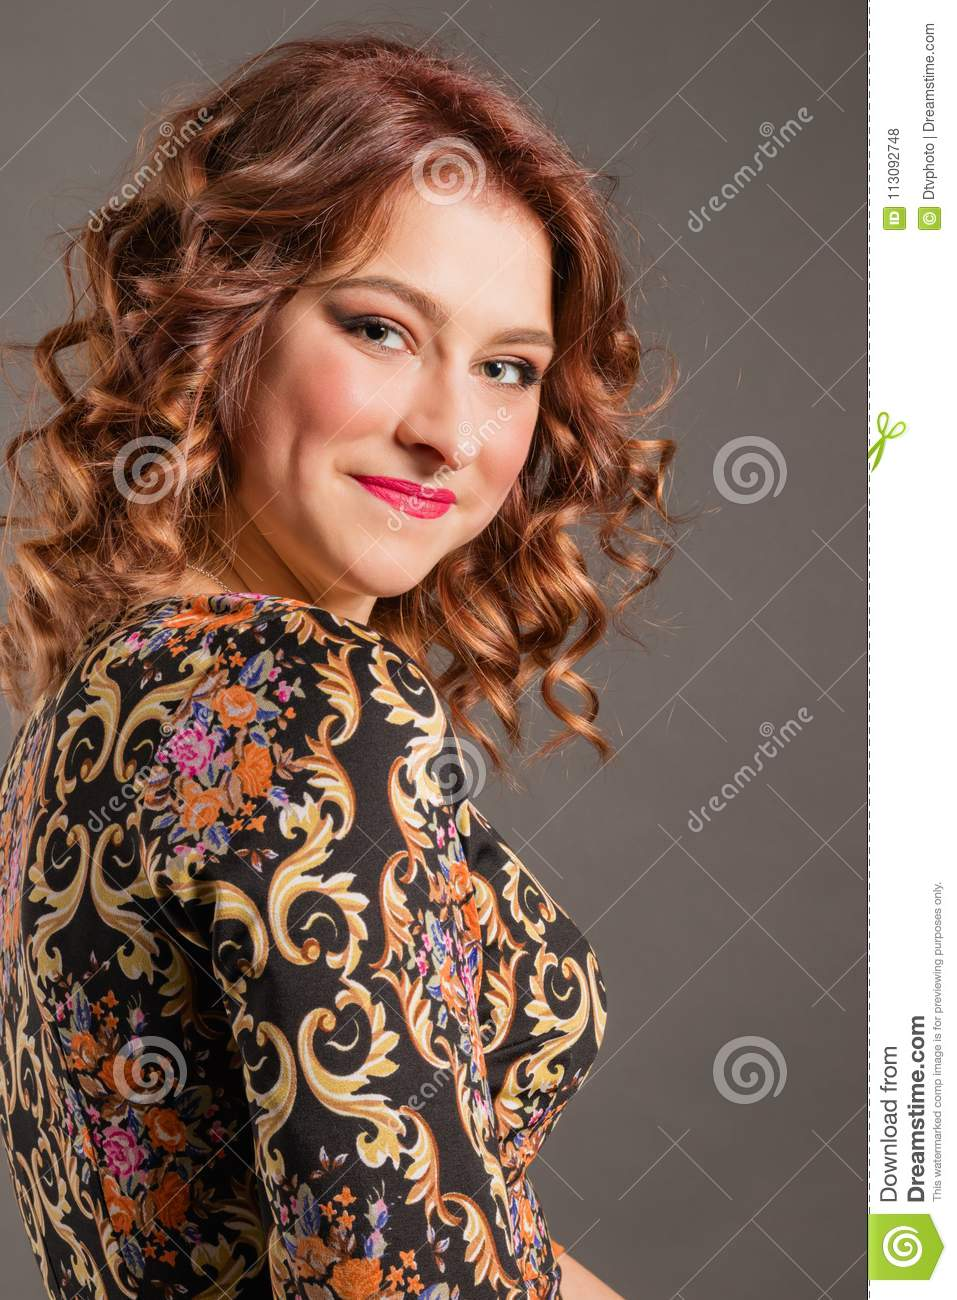 Portrait of attractive smiling girl on a neutral background